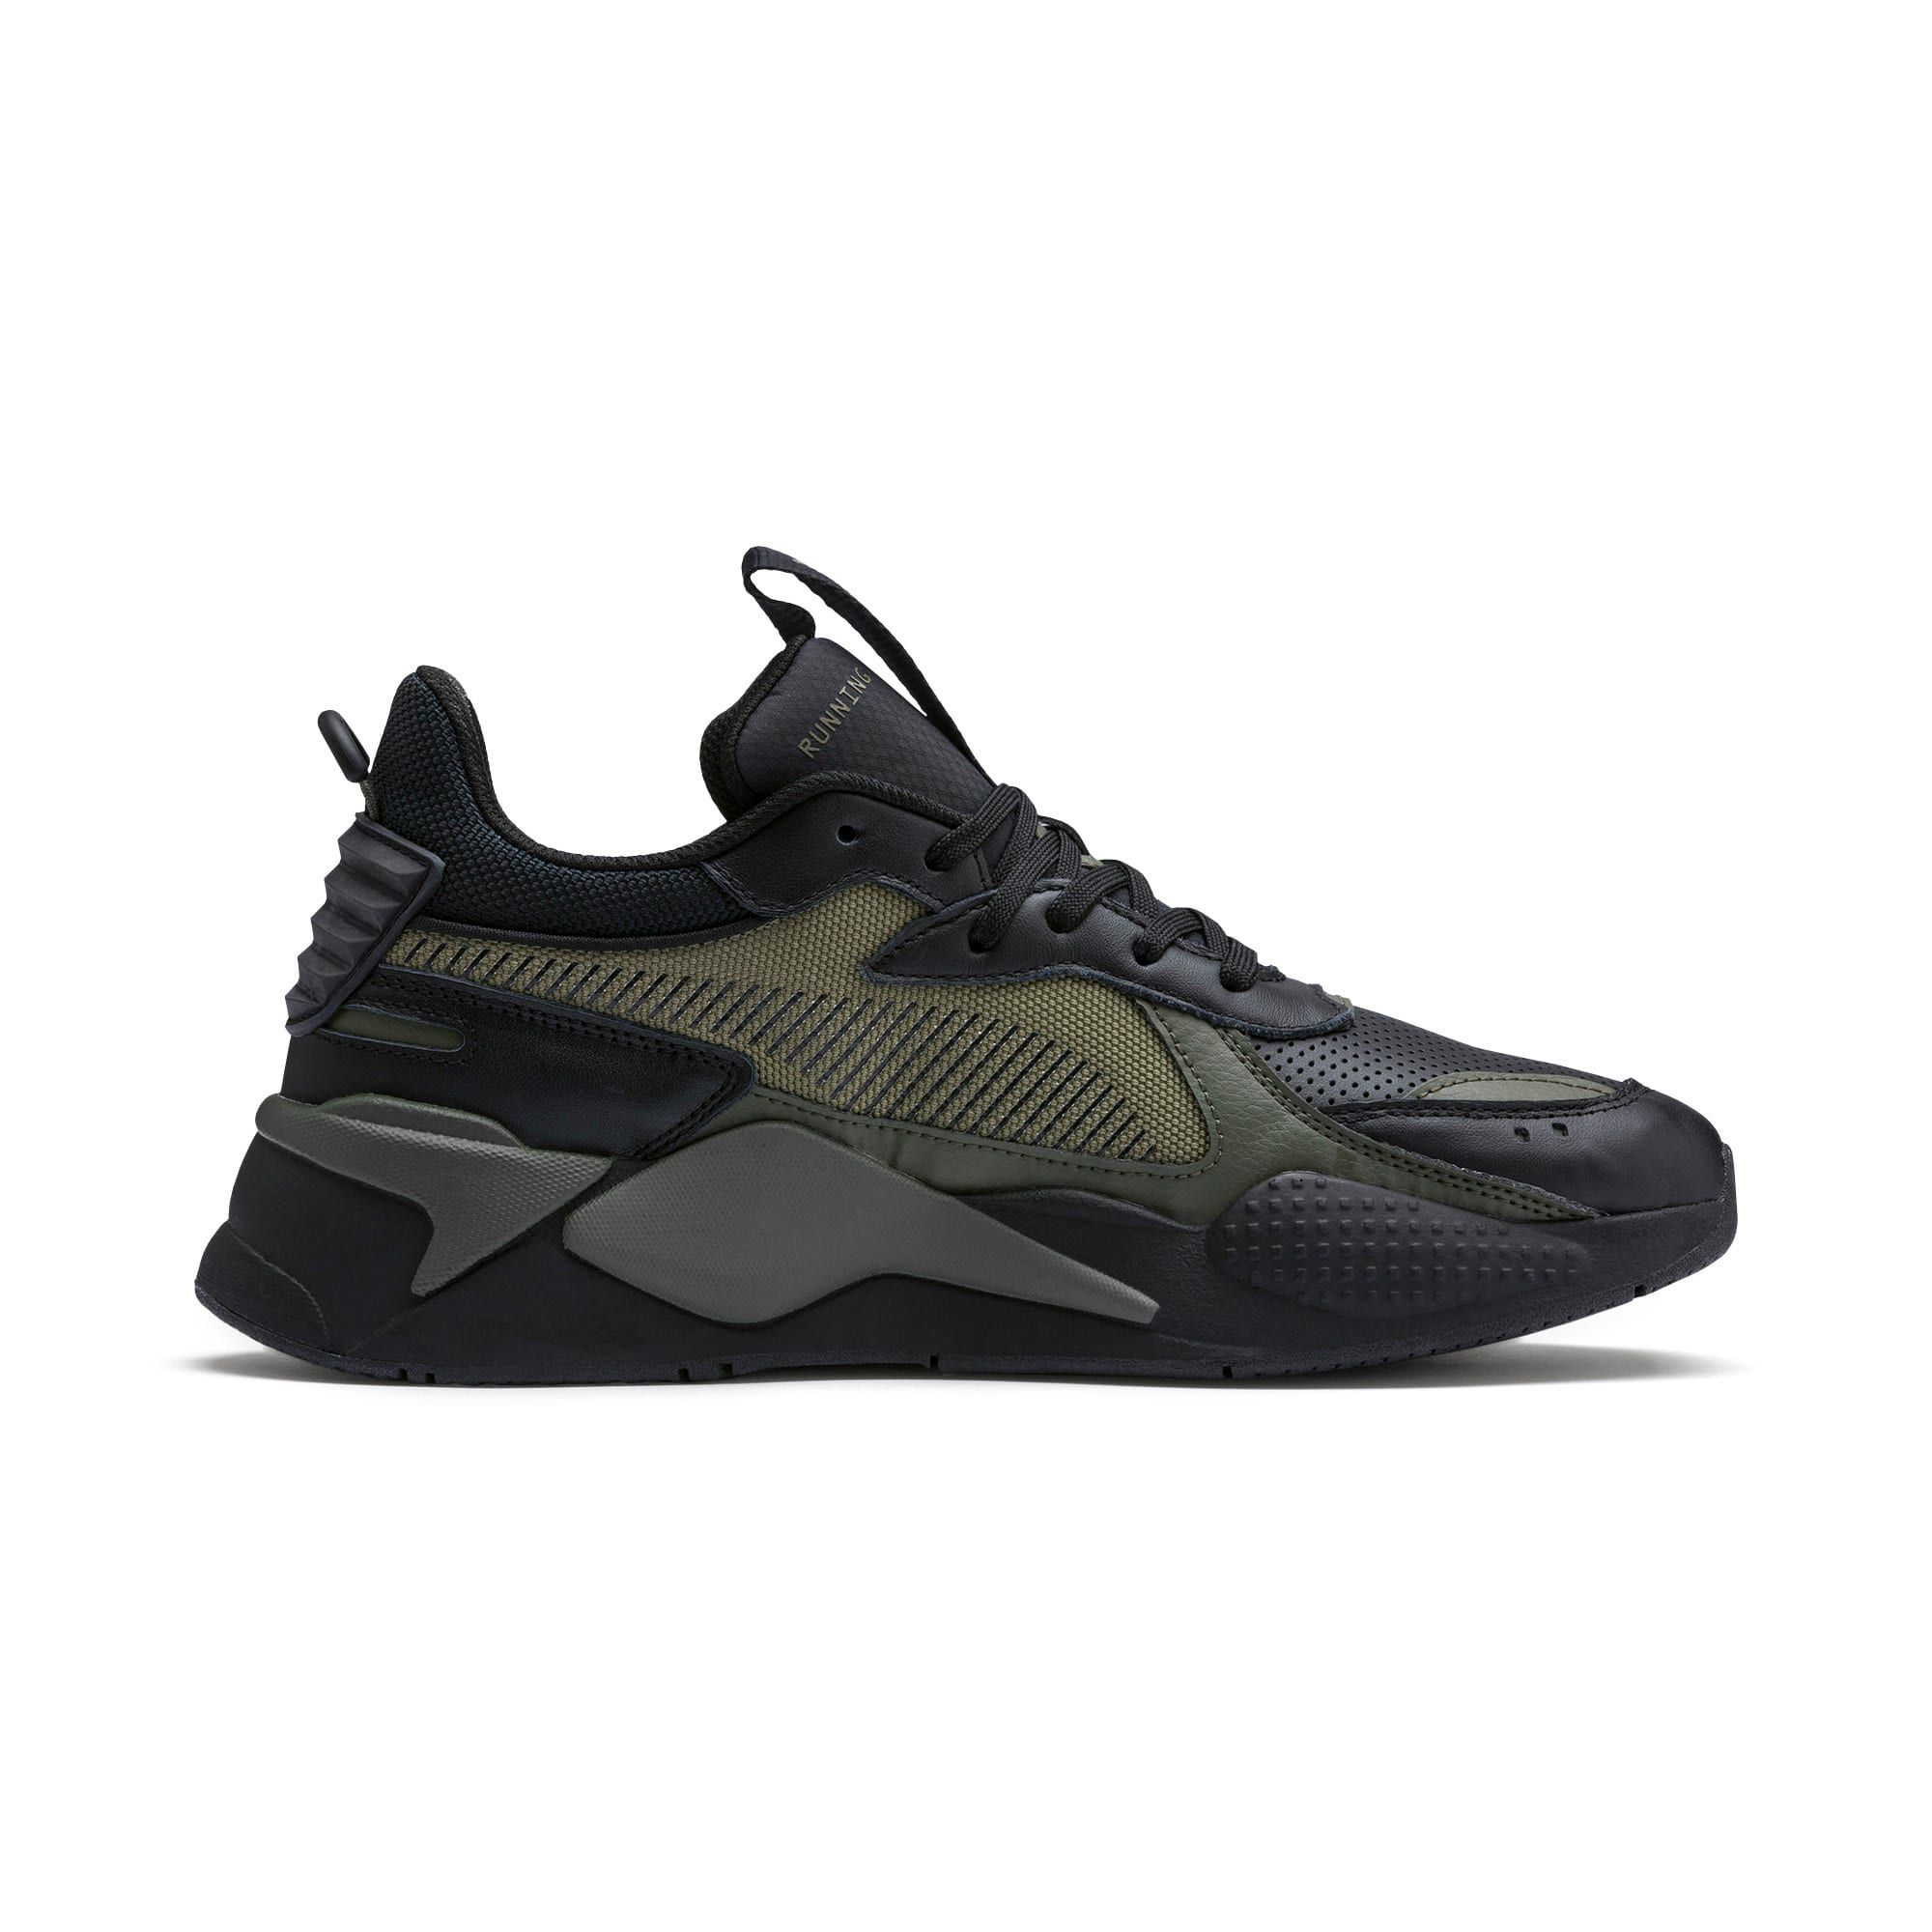 PUMA Rs-X Winterised Trainers in Black/Burnt Olive size 9.5 ...